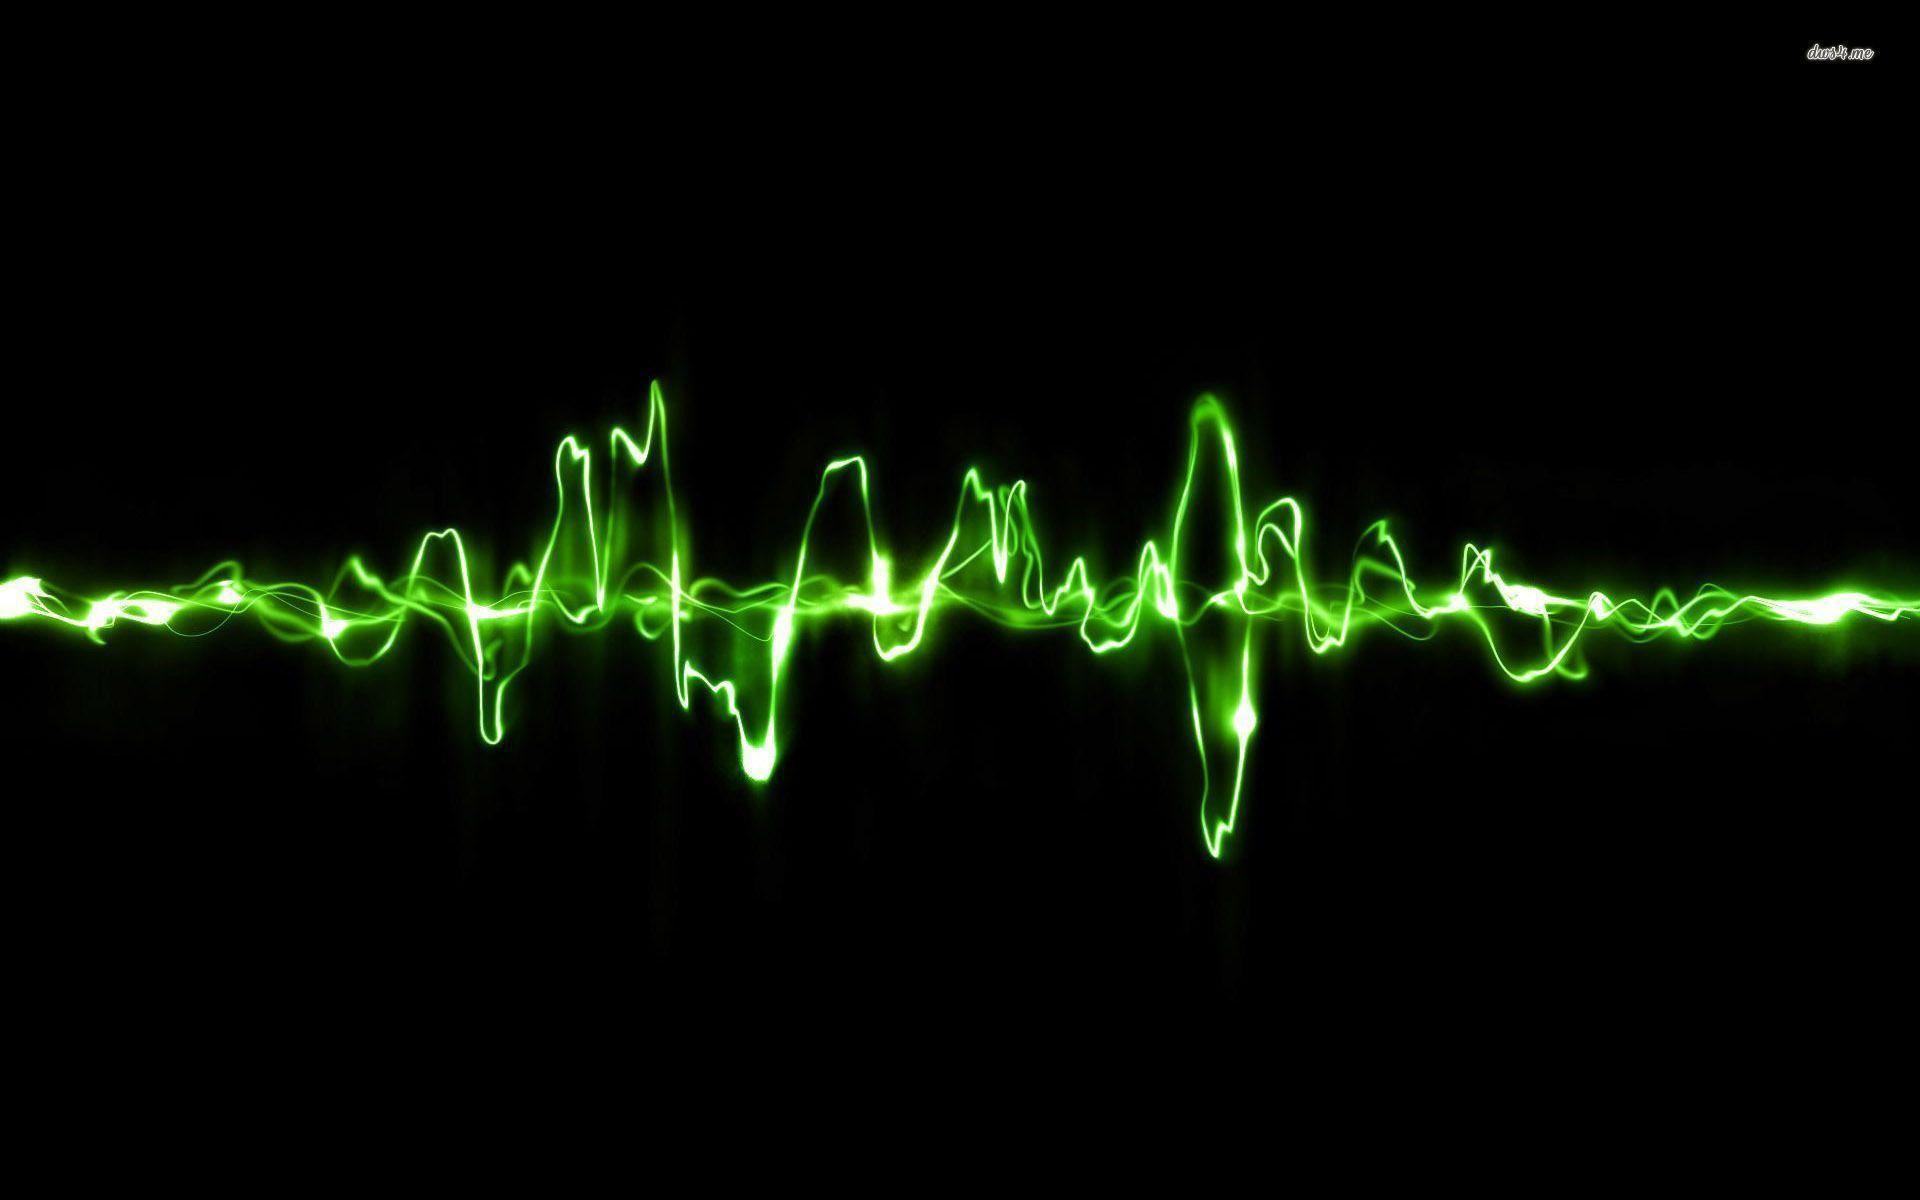 Sound Waves Wallpapers 1920x1200